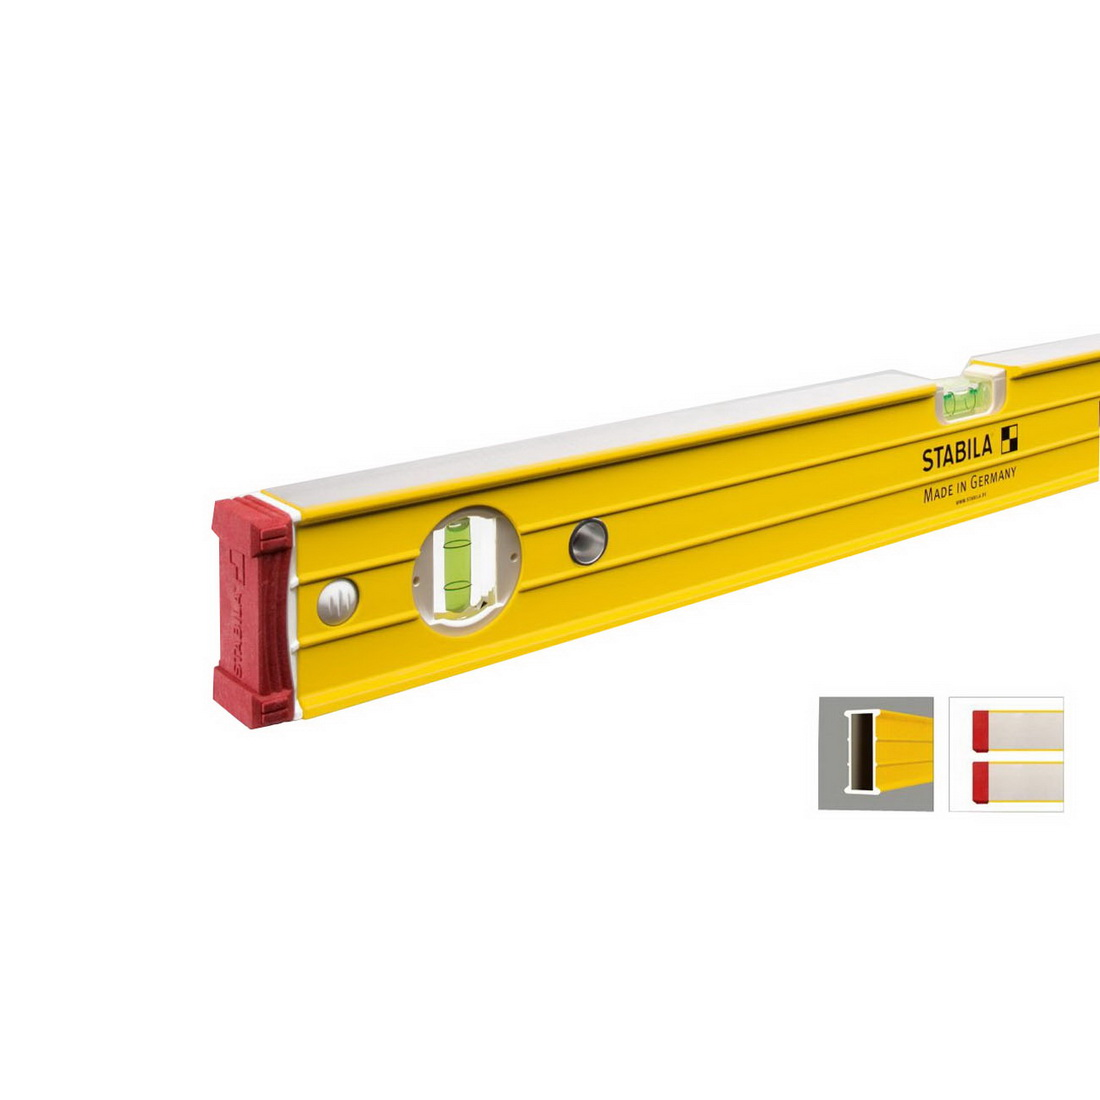 1200mm Type 96-2 3 Vial Spirit Level Aluminium